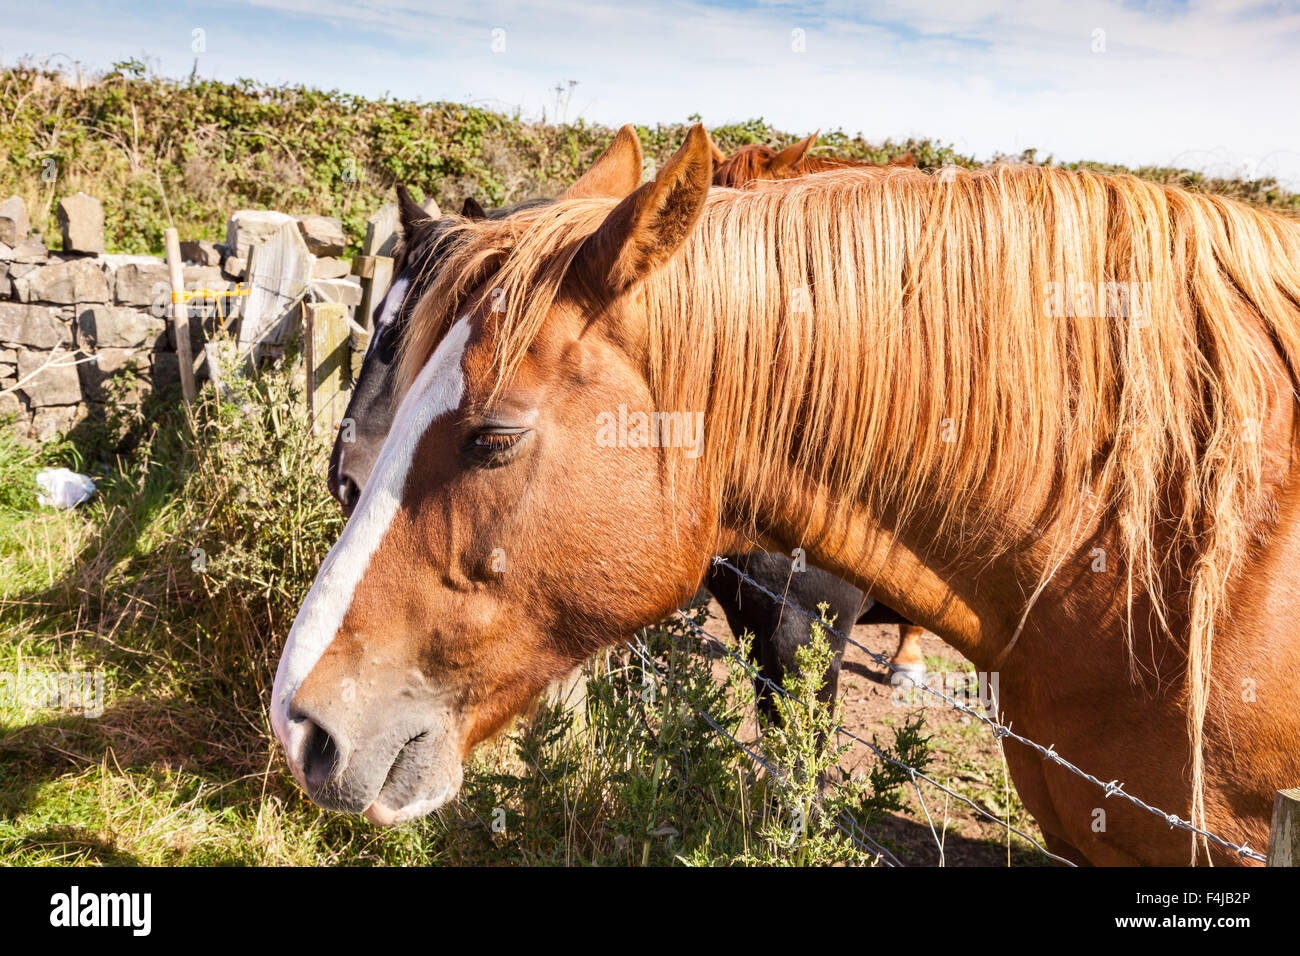 A pair of horses lean over a barbed wire fence at Low Newton by the Sea, Northumbria, UK - Stock Image